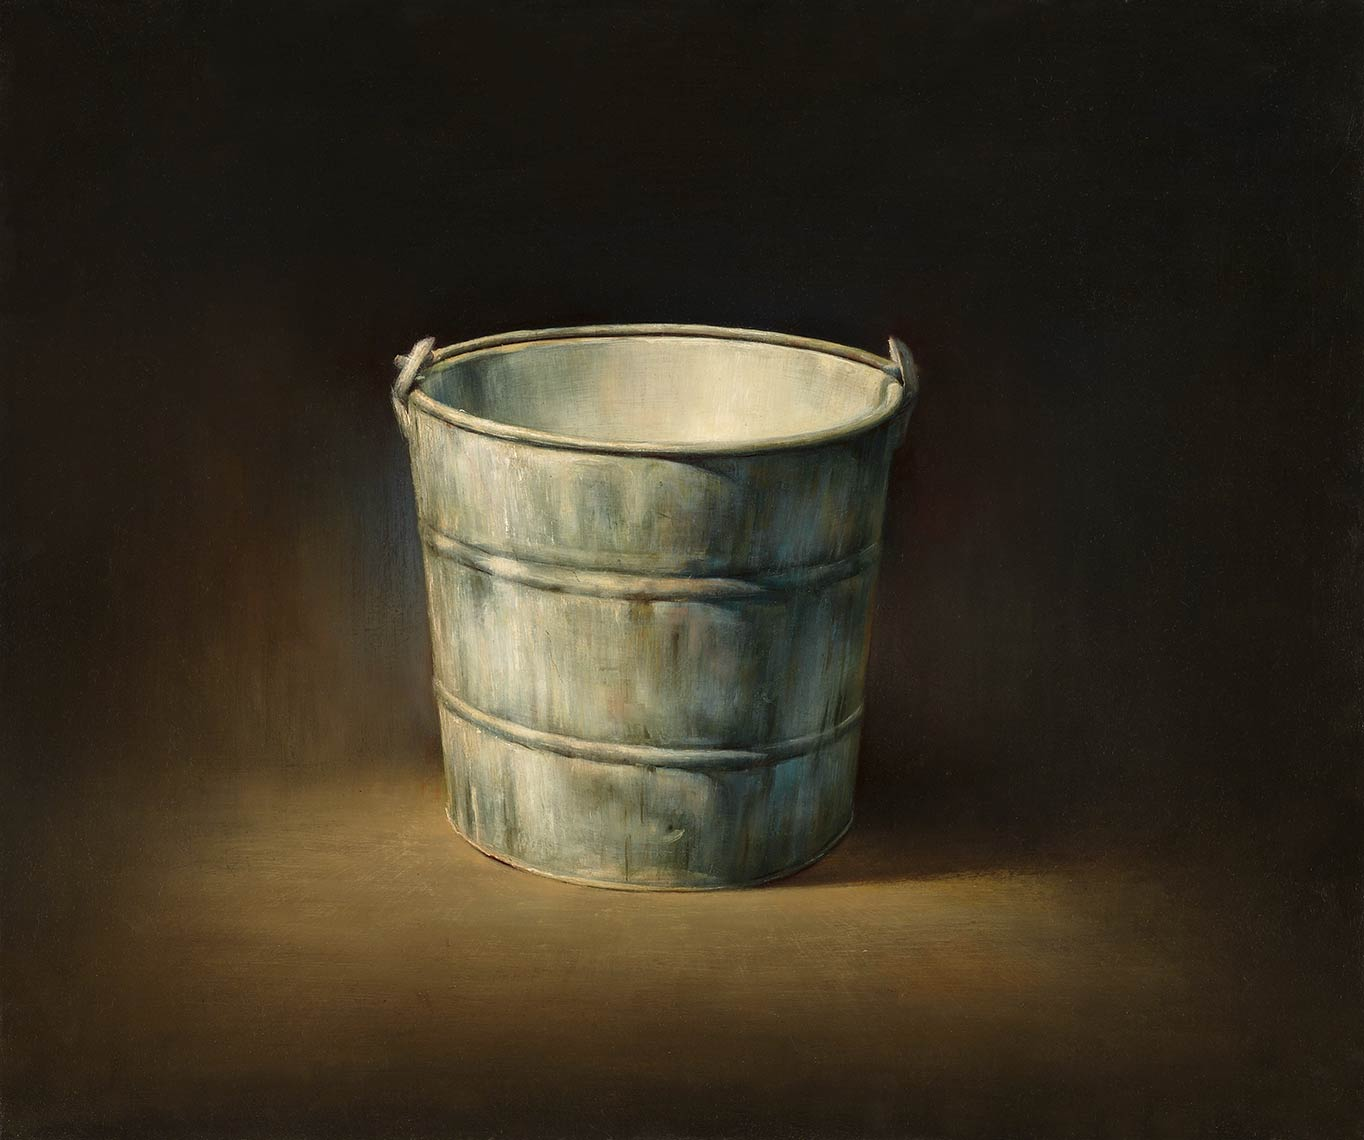 The-Bucket-Theory_2007_oil-on-canvas_65x77_25.5x30.5_Private-Collection